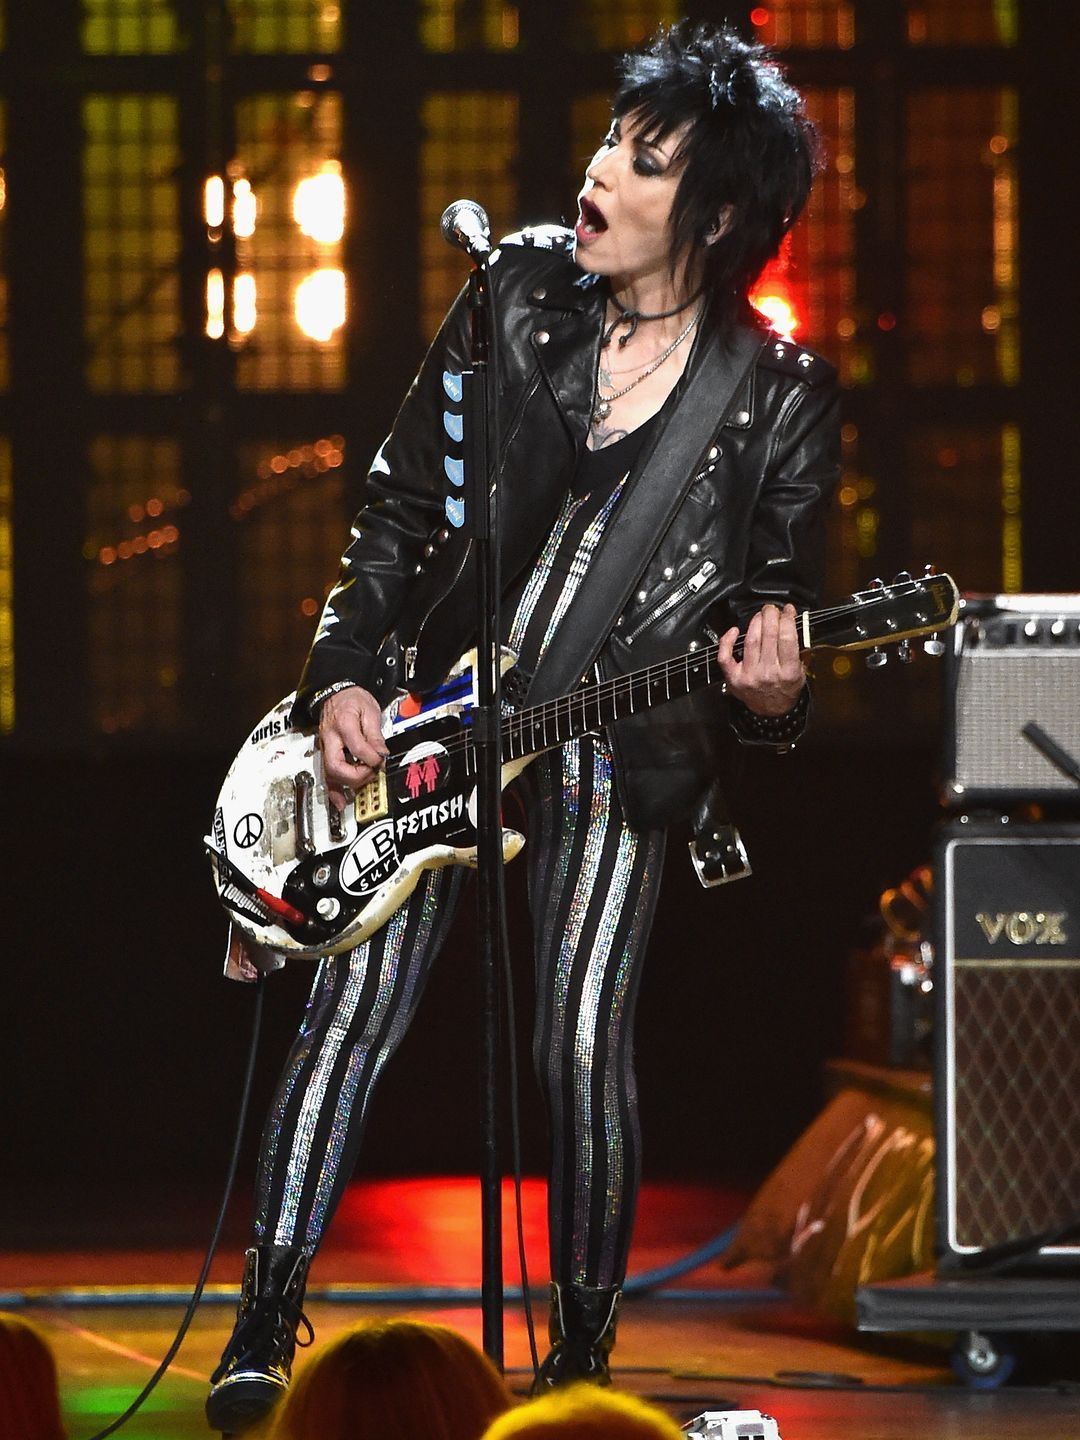 Green Day Ringo Rock Hall Of Fame Ceremony Joan Jett Rock And Roll Joan